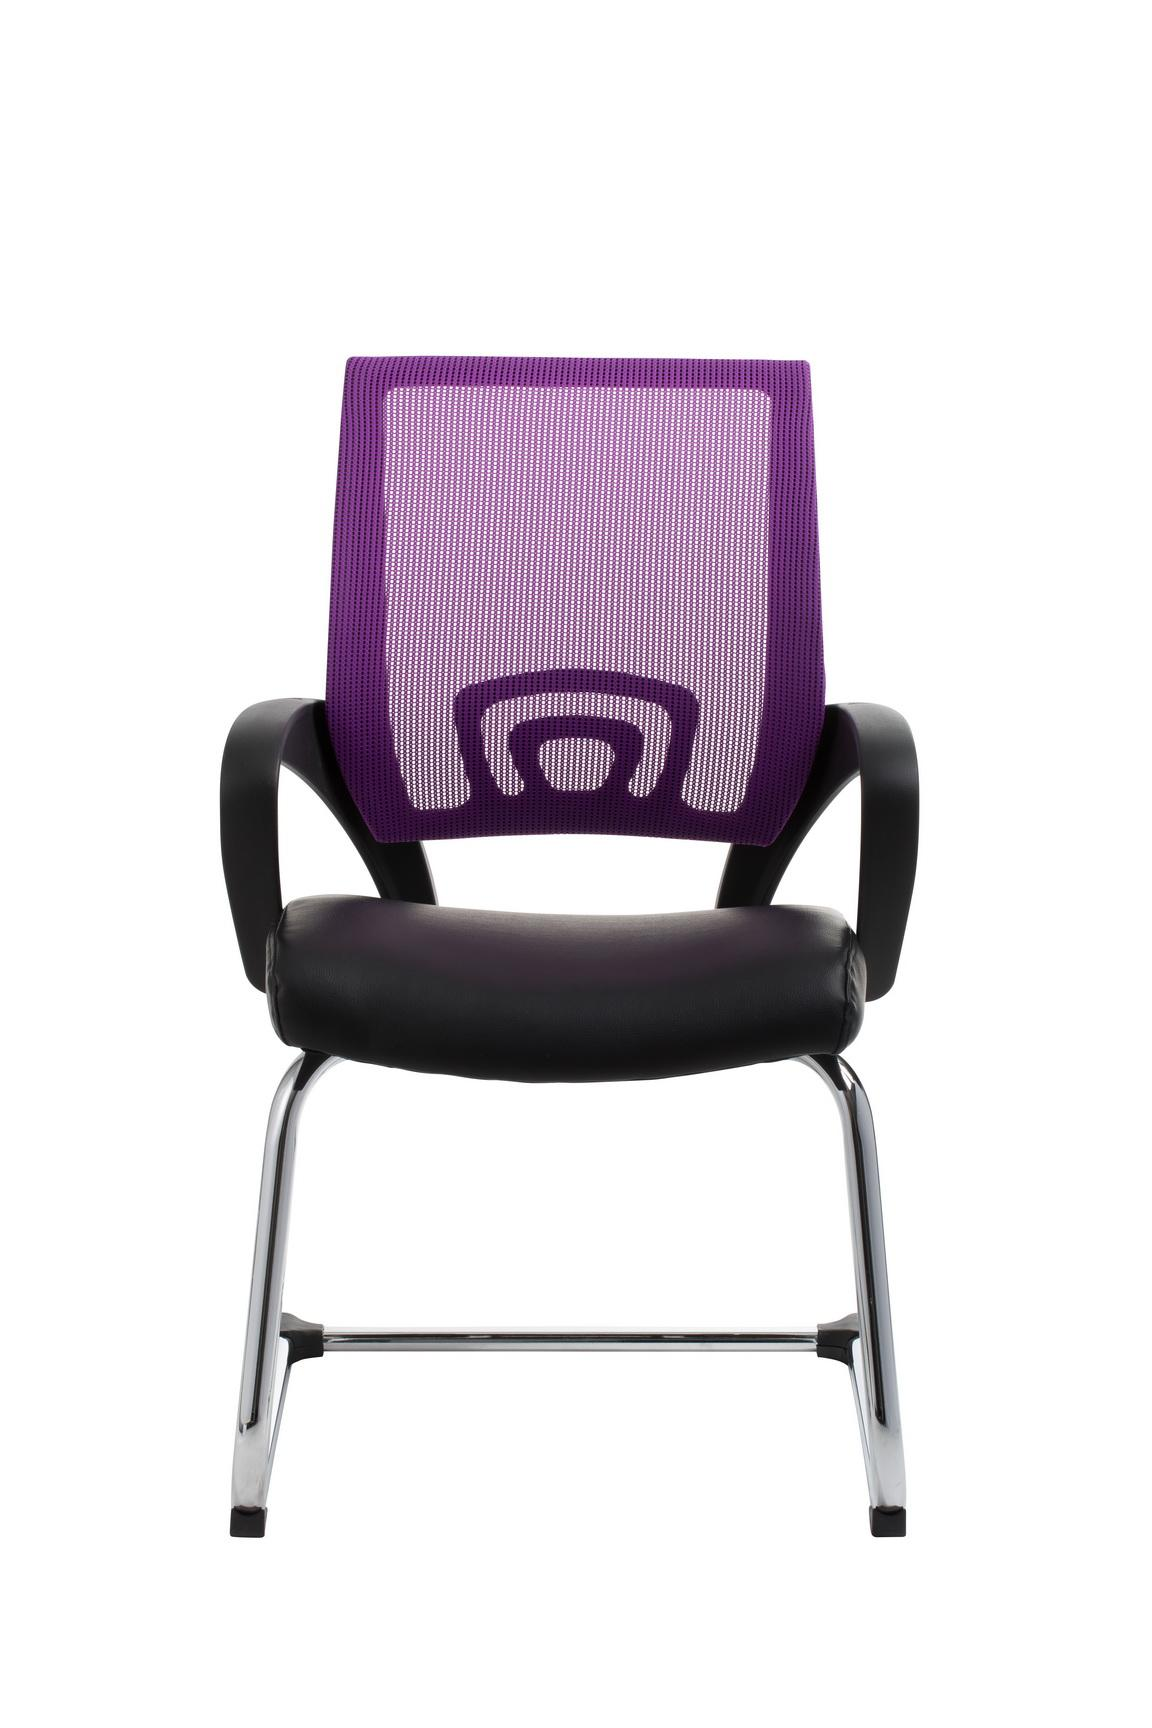 purple recliner chairs desk chair dubai view visitors in office furniture store